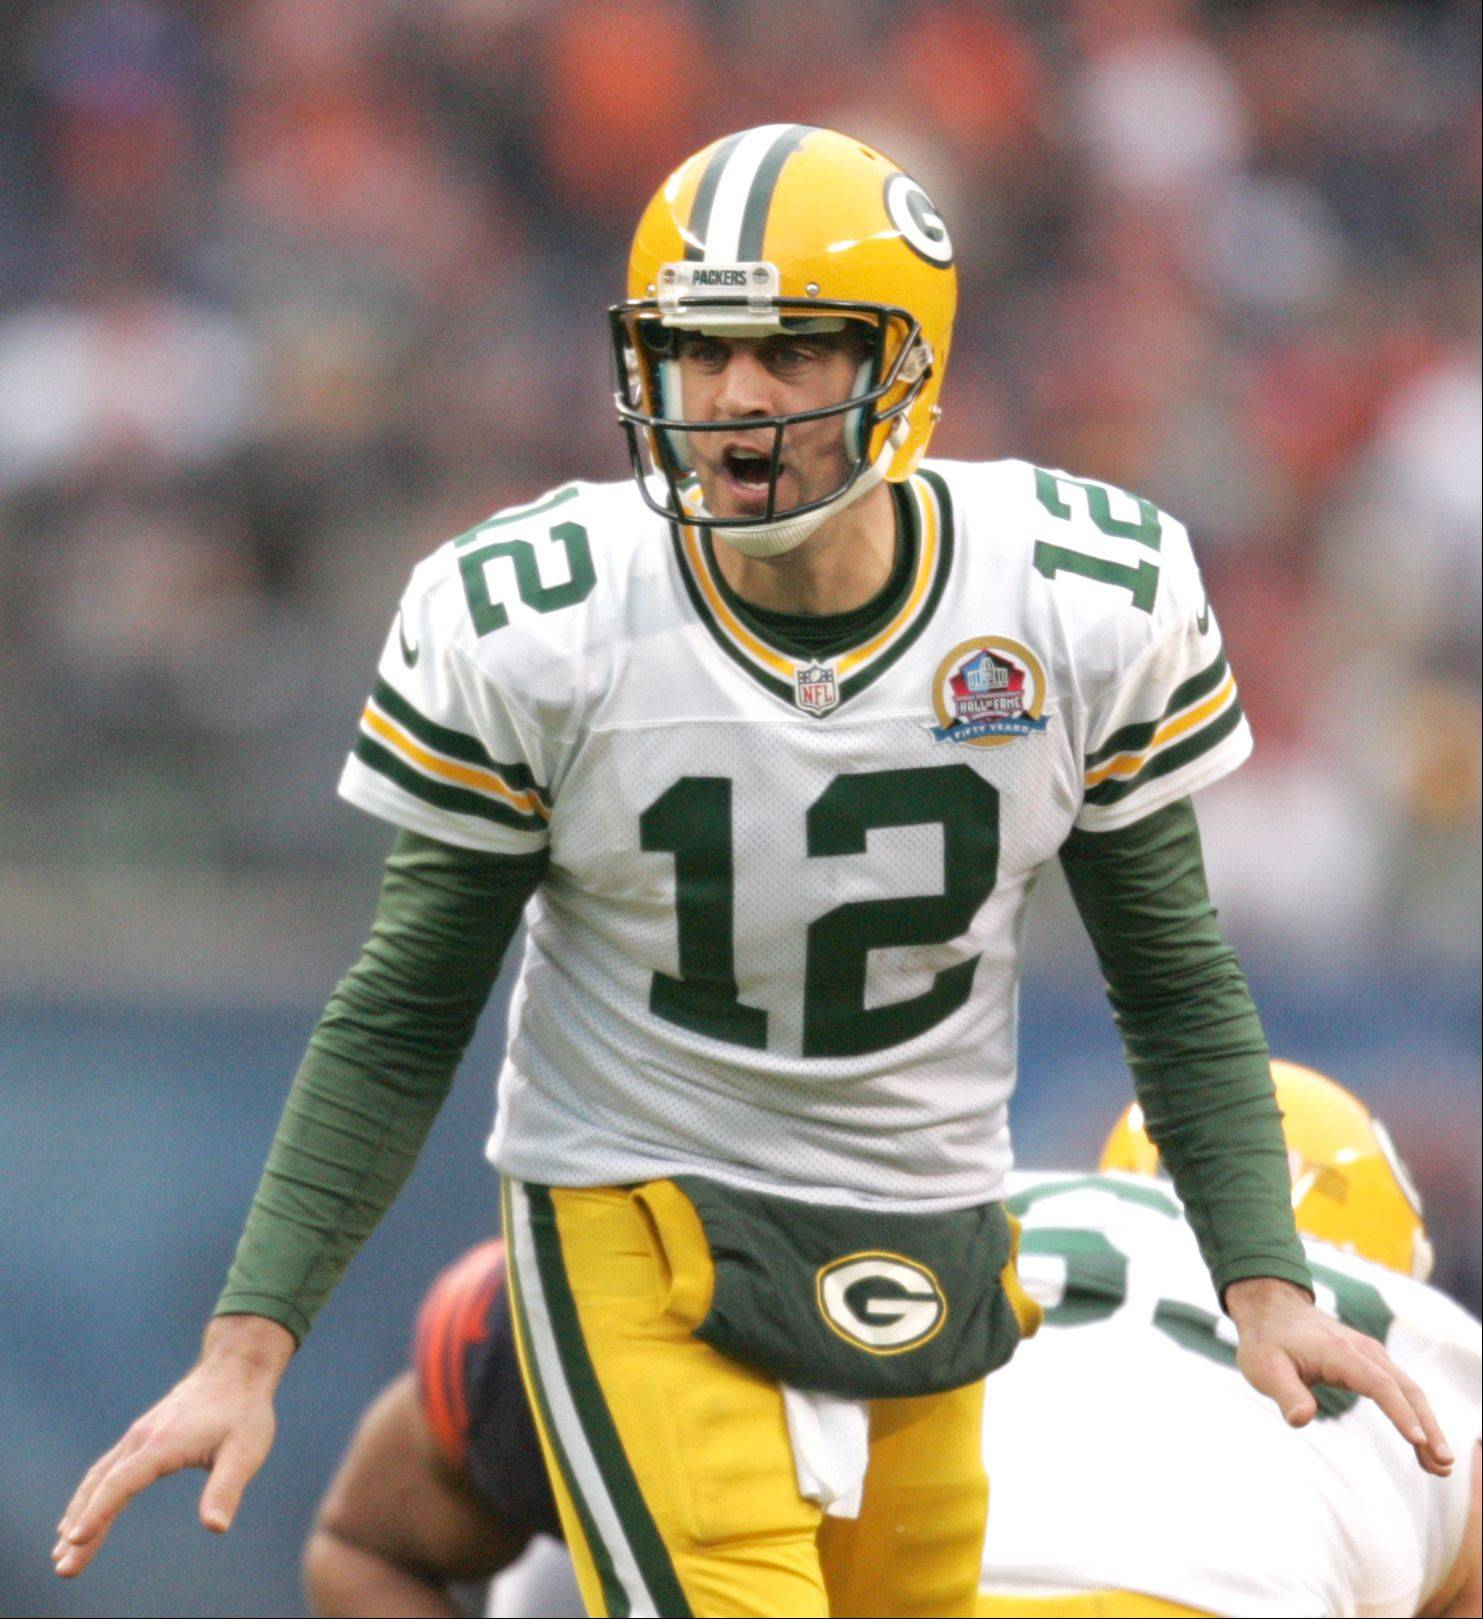 Green Bay Packers quarterback Aaron Rodgers says the offense should have scored more against the 49ers last season.